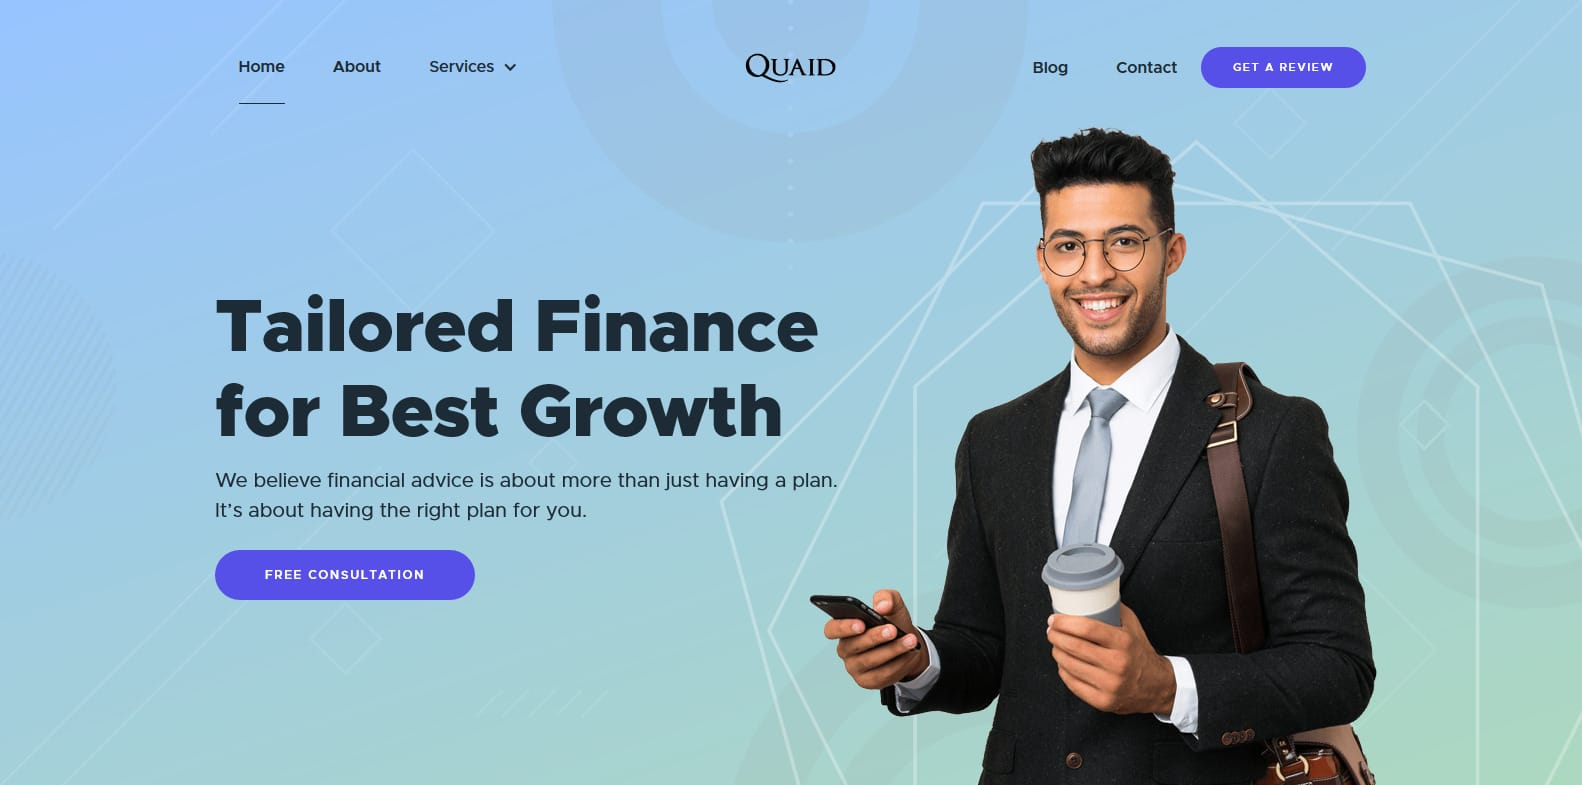 quaid-accounting-website-template